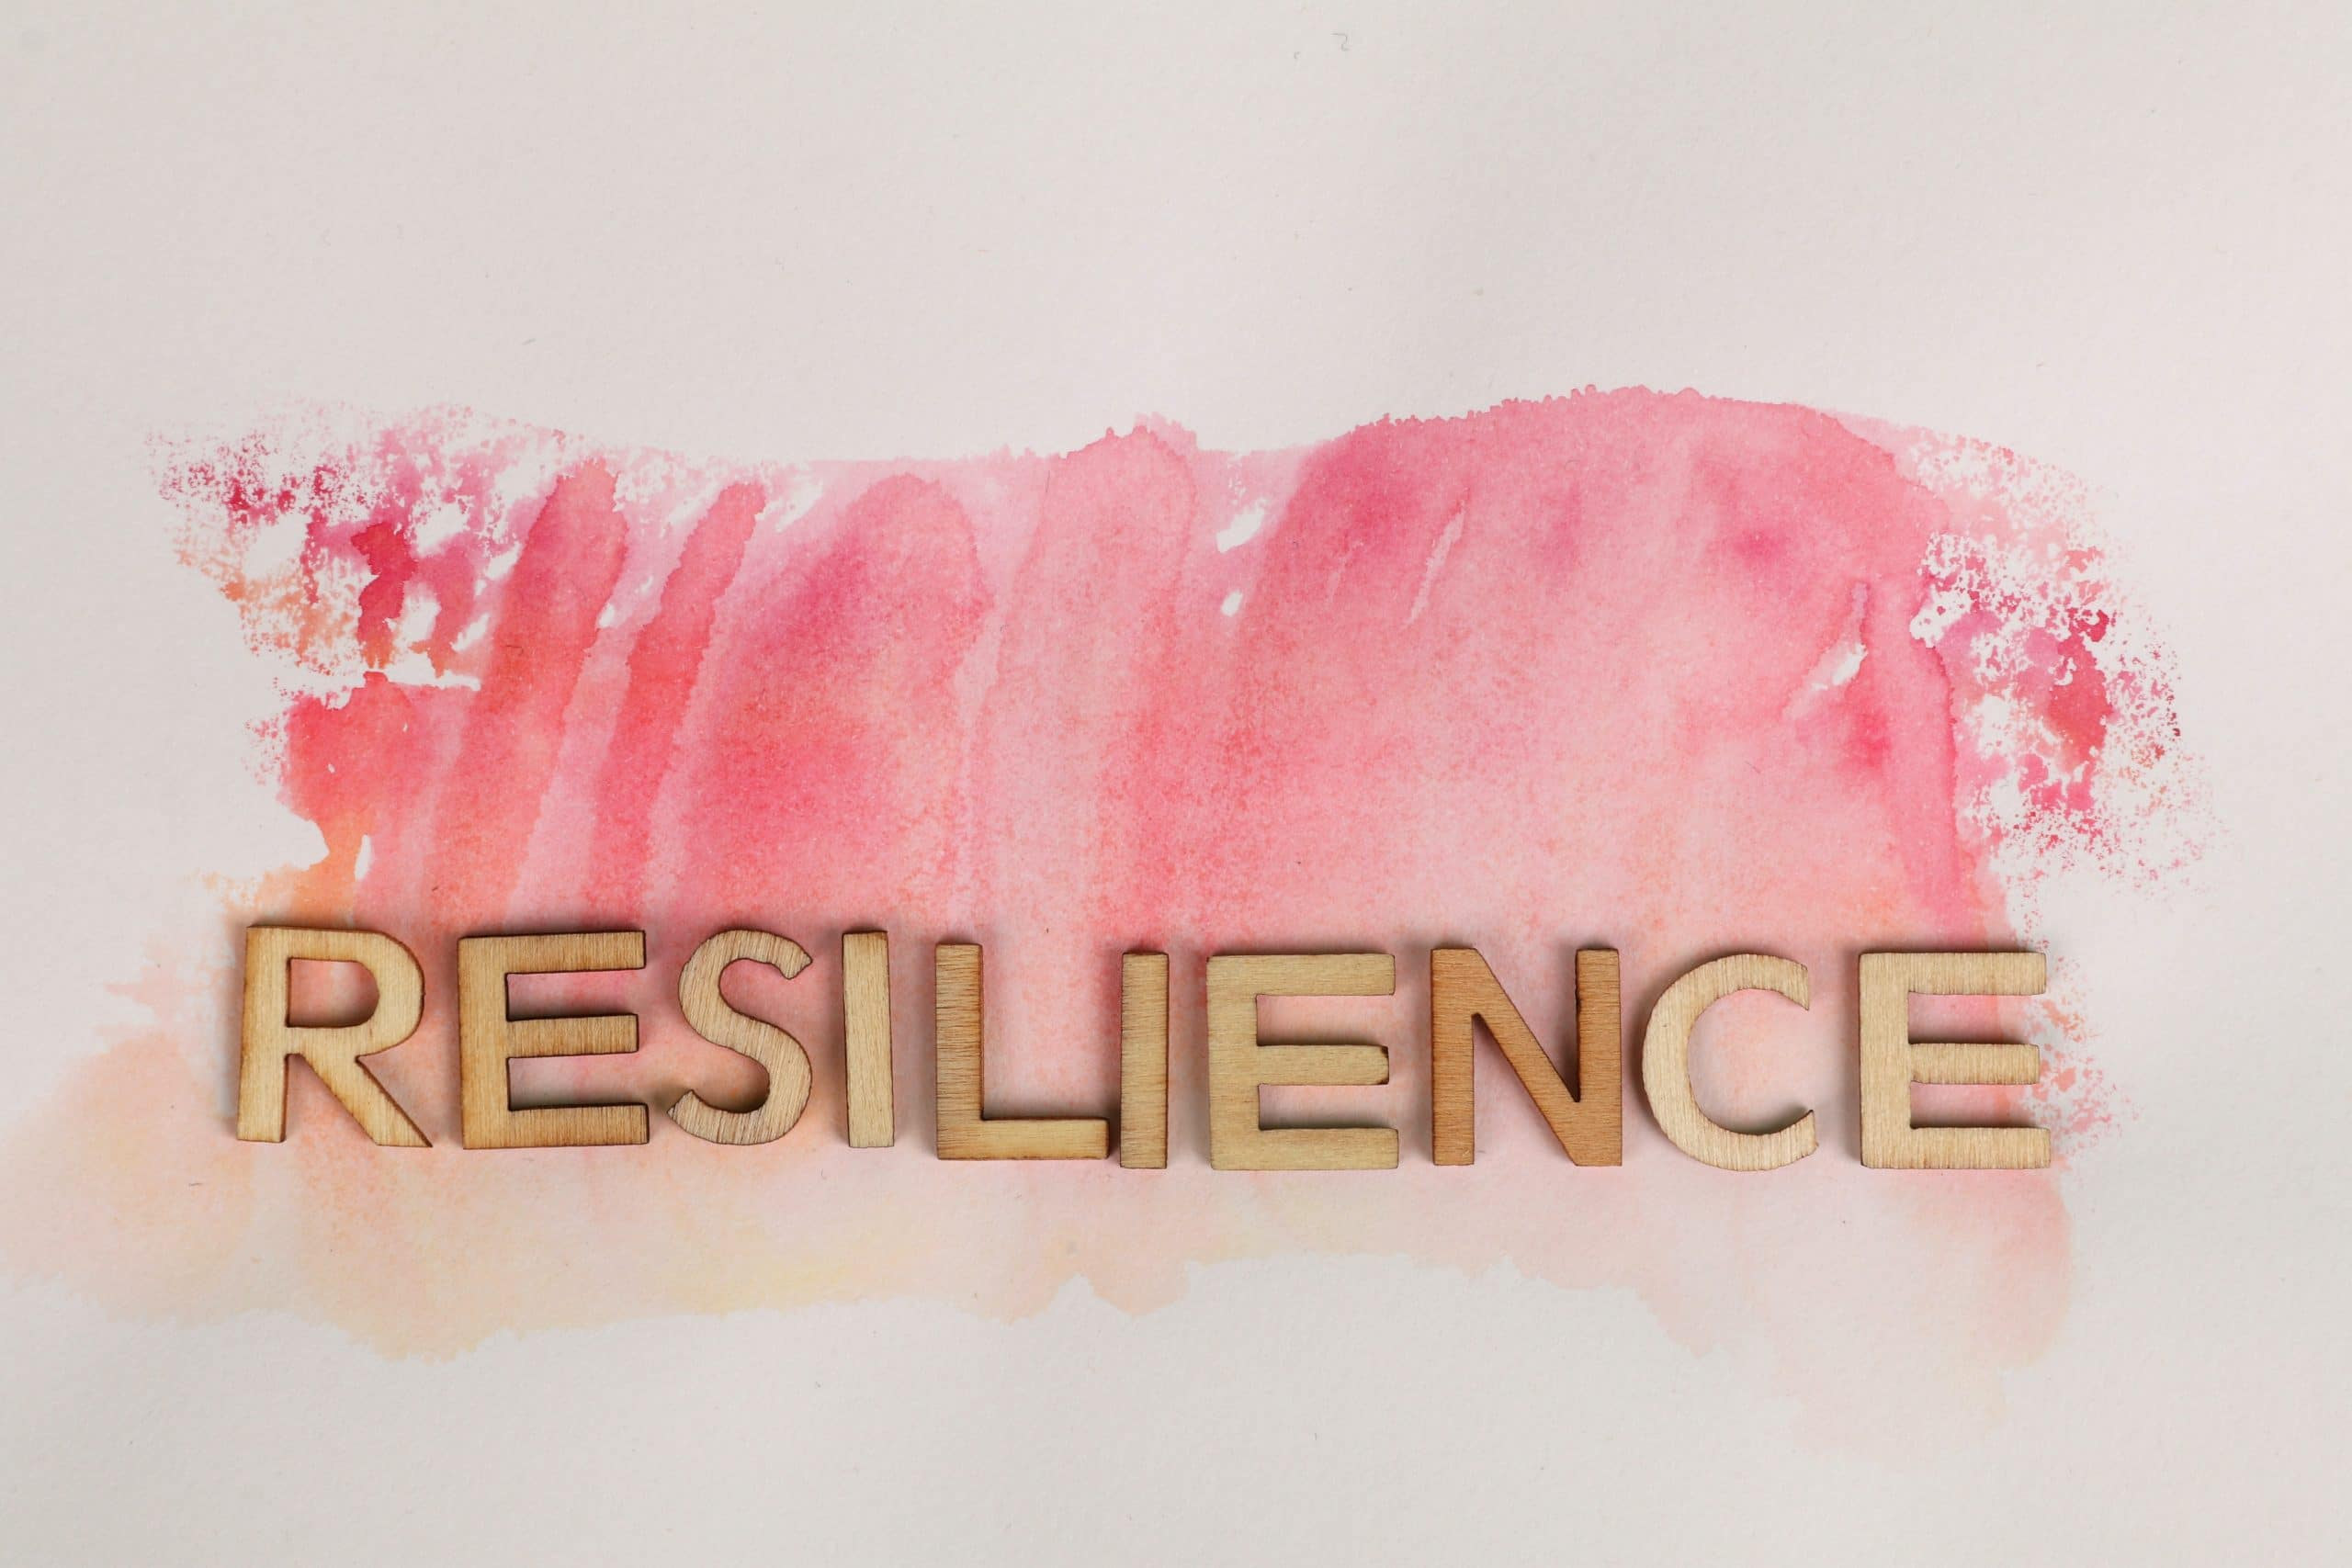 Resilience - How To Build It And Live A Happy Life